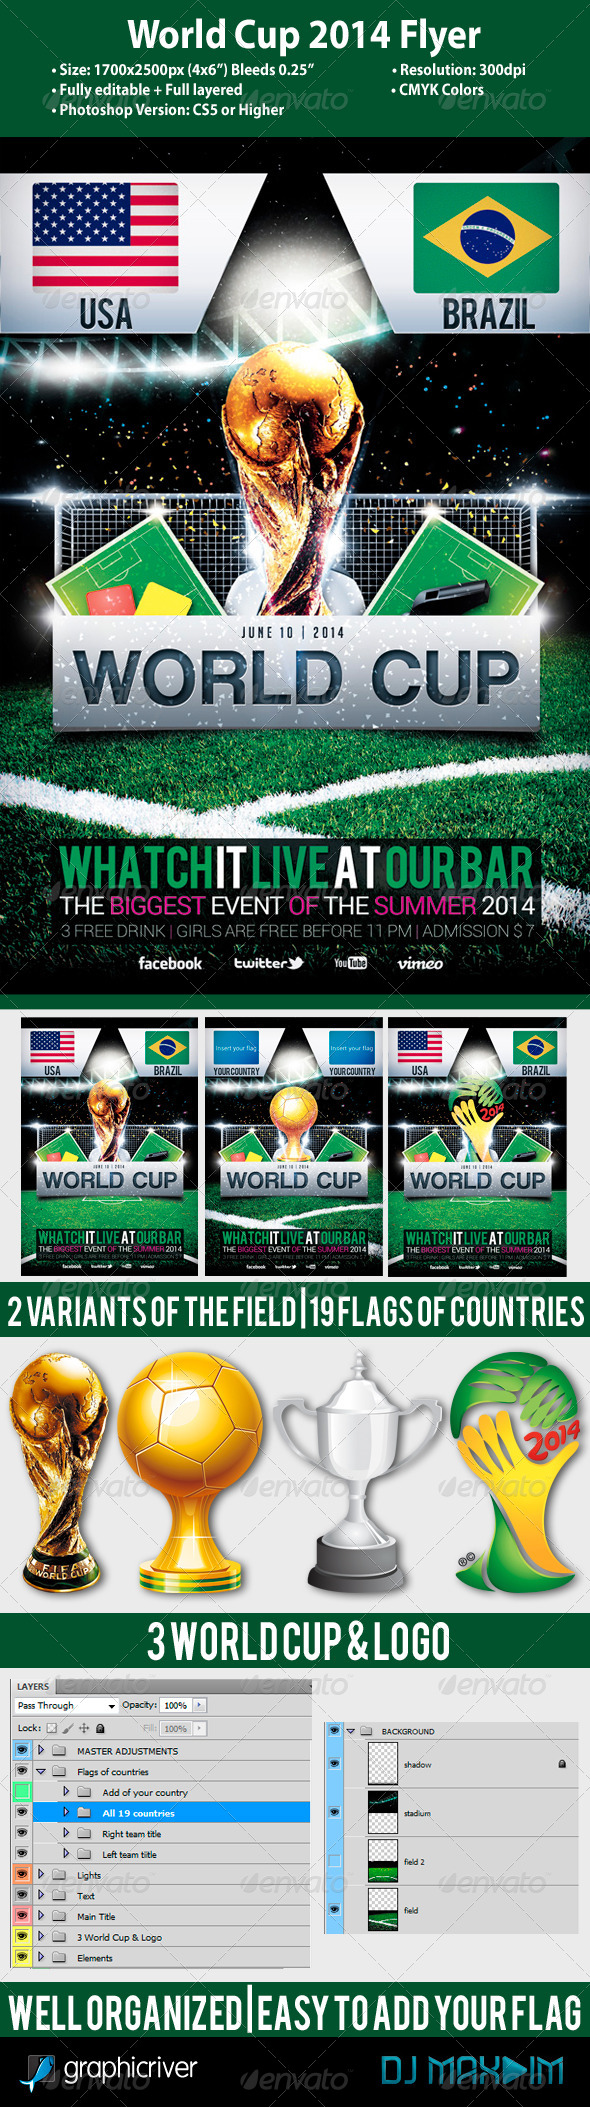 GraphicRiver World Cup 2014 Flyer Template 5389282